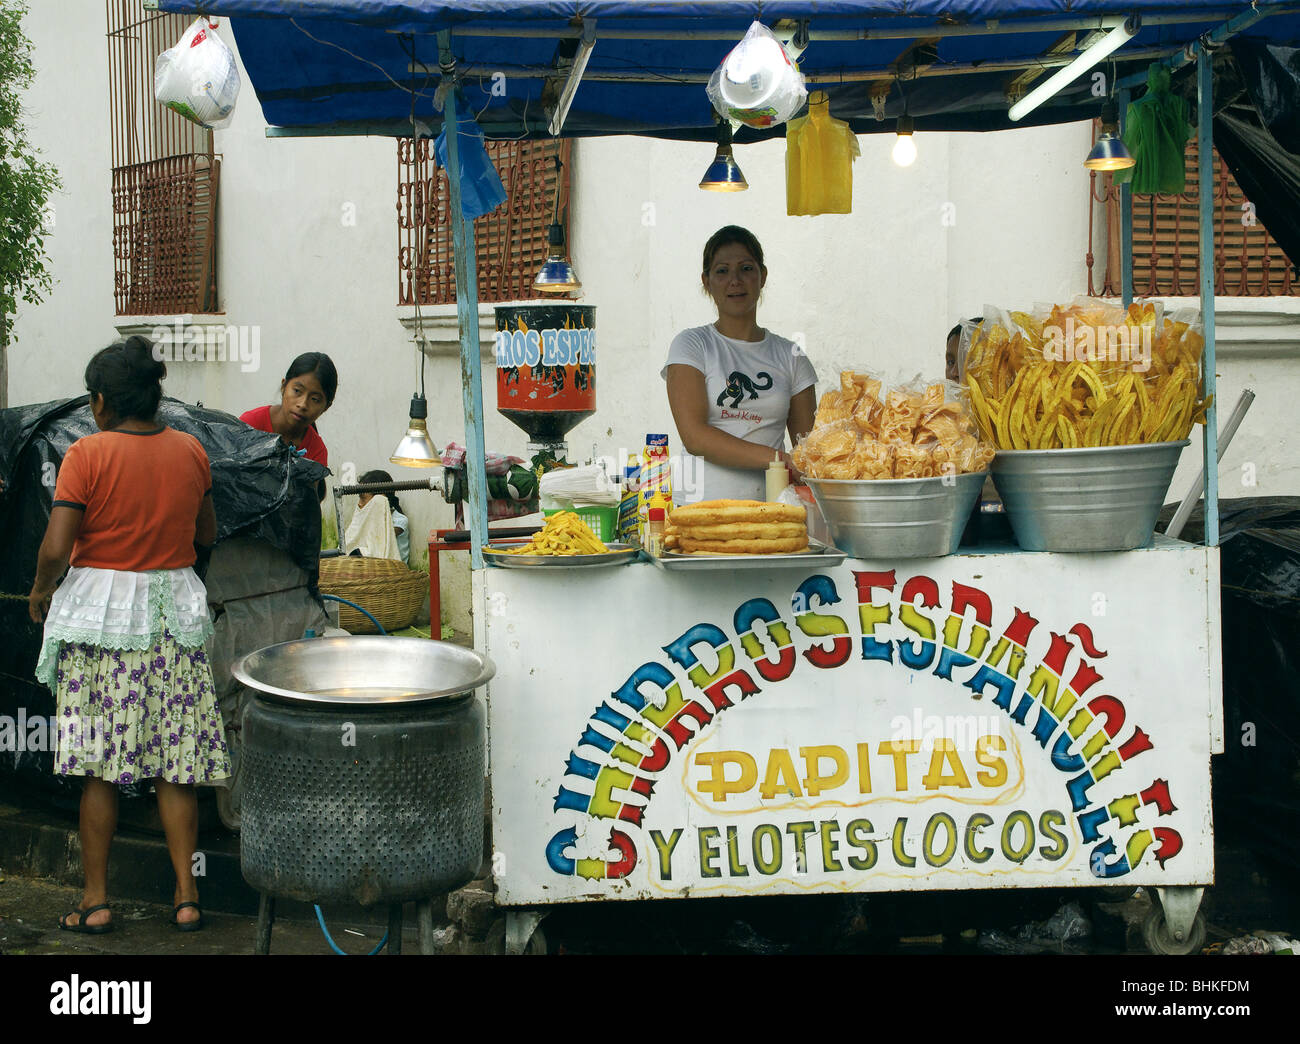 El Salvador Selling Food In The Street Stock Photo Alamy